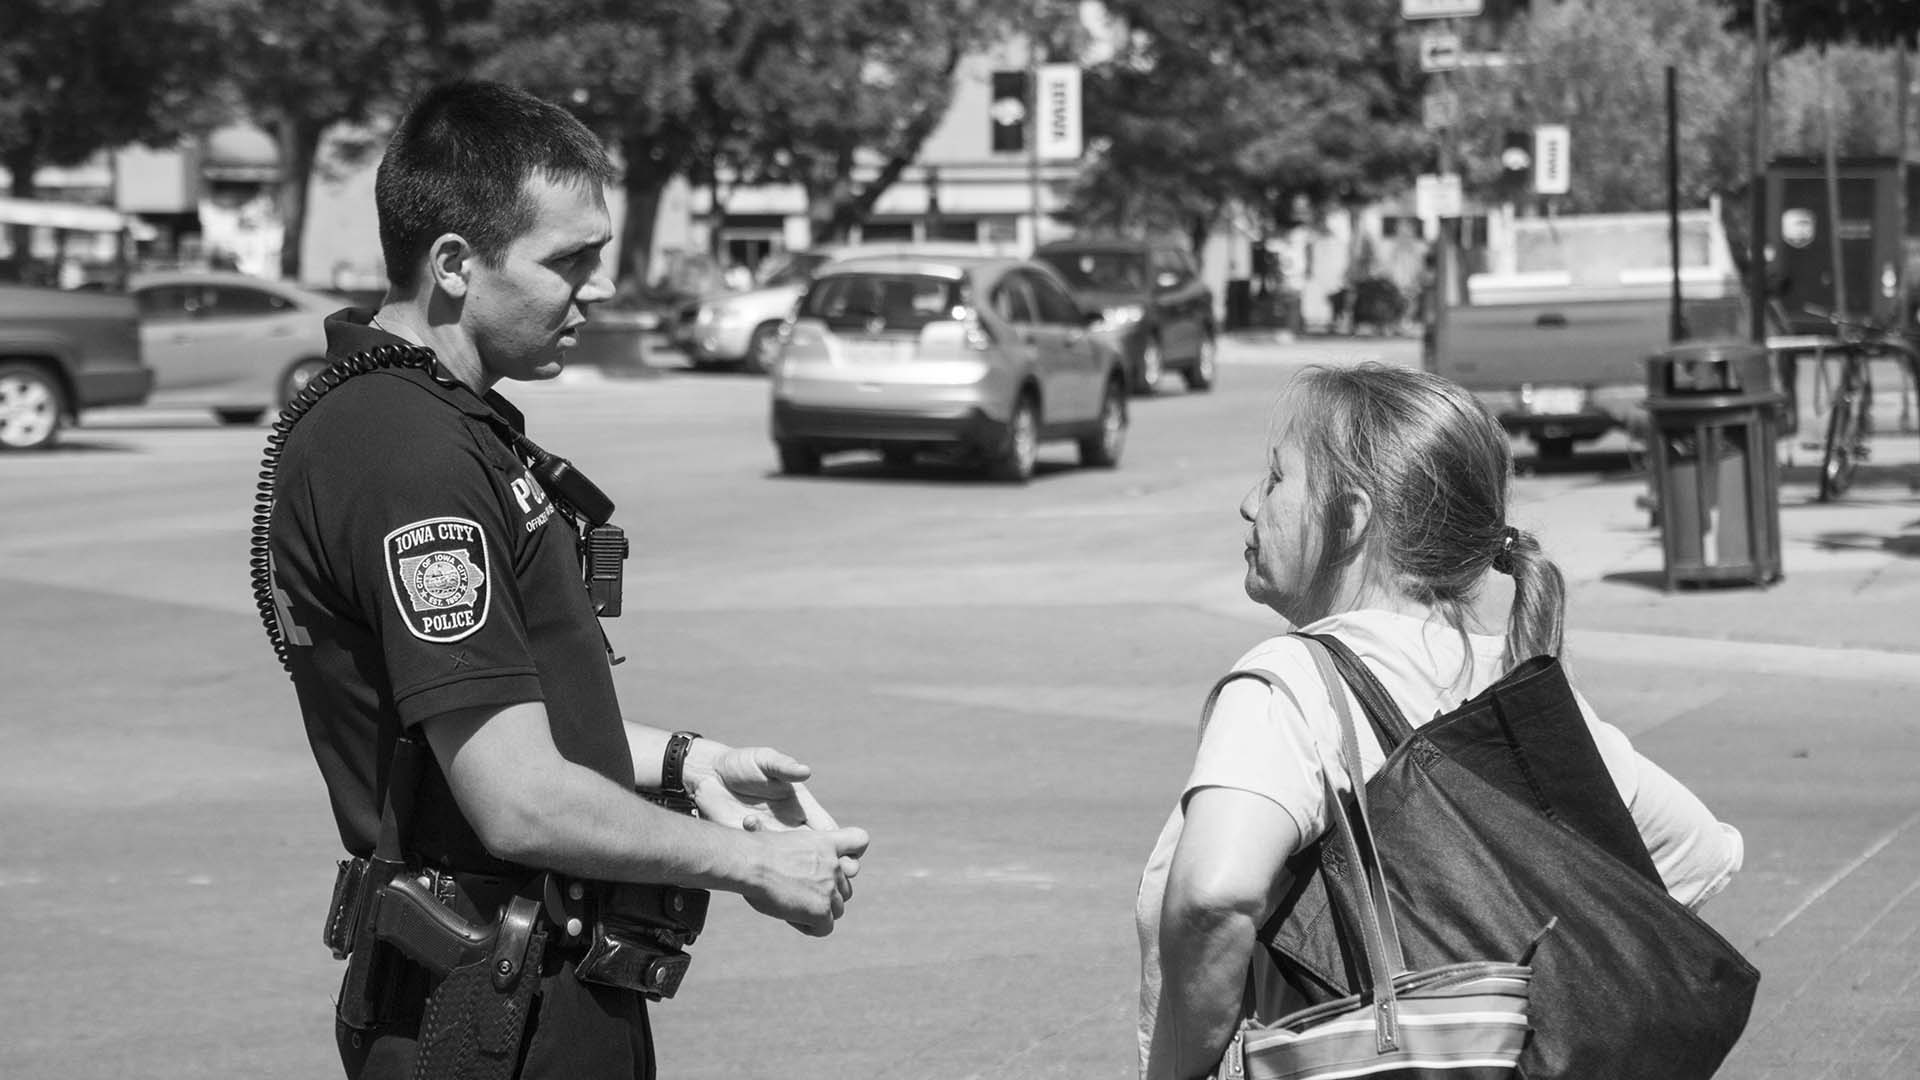 Officer Travis Graves speaks to a local citizen while on patrol downtown on Wednesday, July 25, 2018. Officer Graves is Iowa City's new Community Outreach Officer. The Community Outreach Officer provides additional coverage of downtown prior to the Night Shift Officer. (Tate Hildyard/The Daily Iowan)